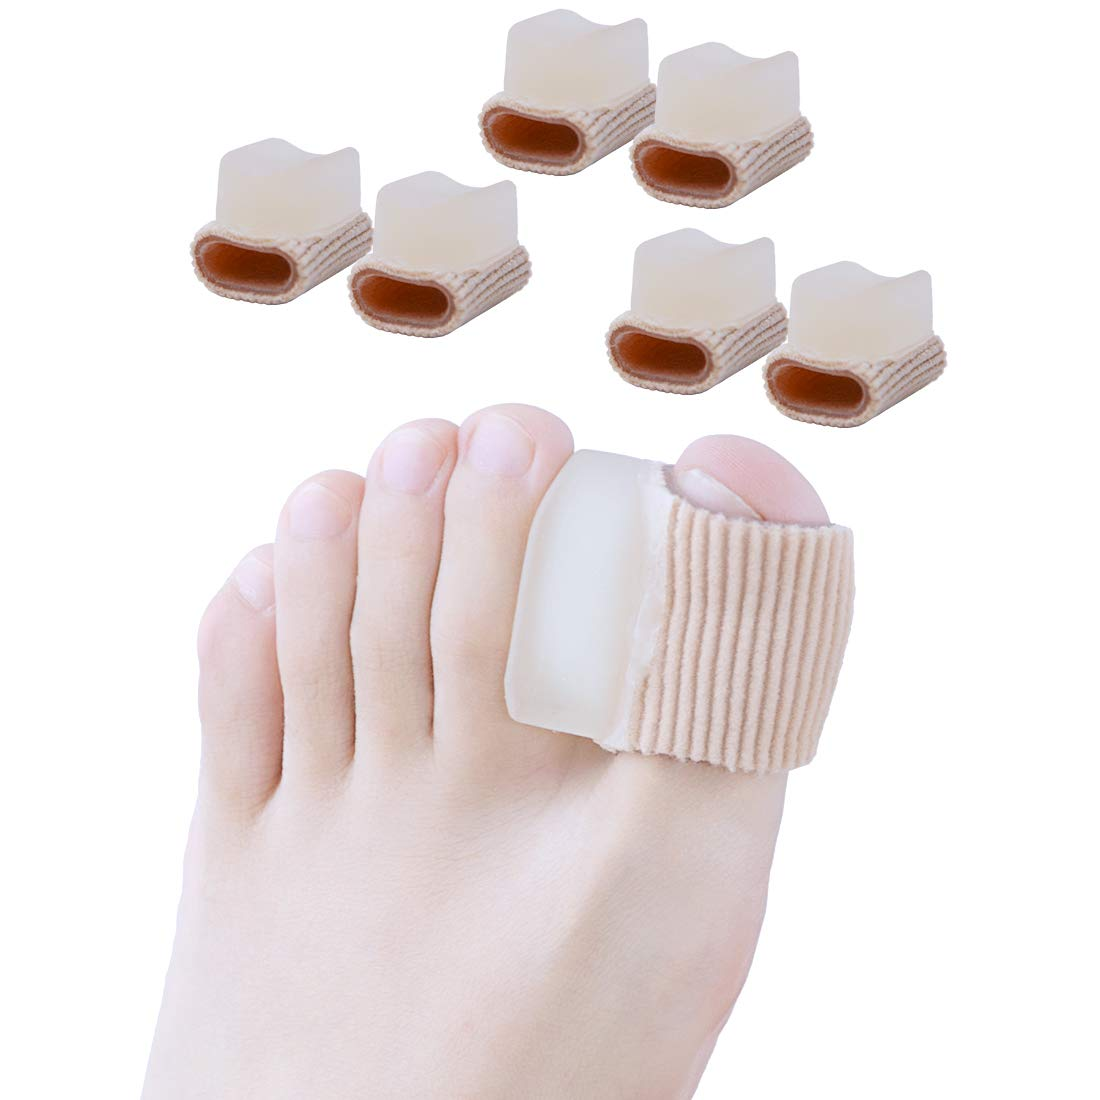 Povihome 3 Pairs Gel Toe Straightener Corrector for Overlapping Toe, Fabric Toe Separators for Hallux Valgus Bunion Orthotics, Bunion Protector with Soft Gel Lining for Bunion Pain Relief